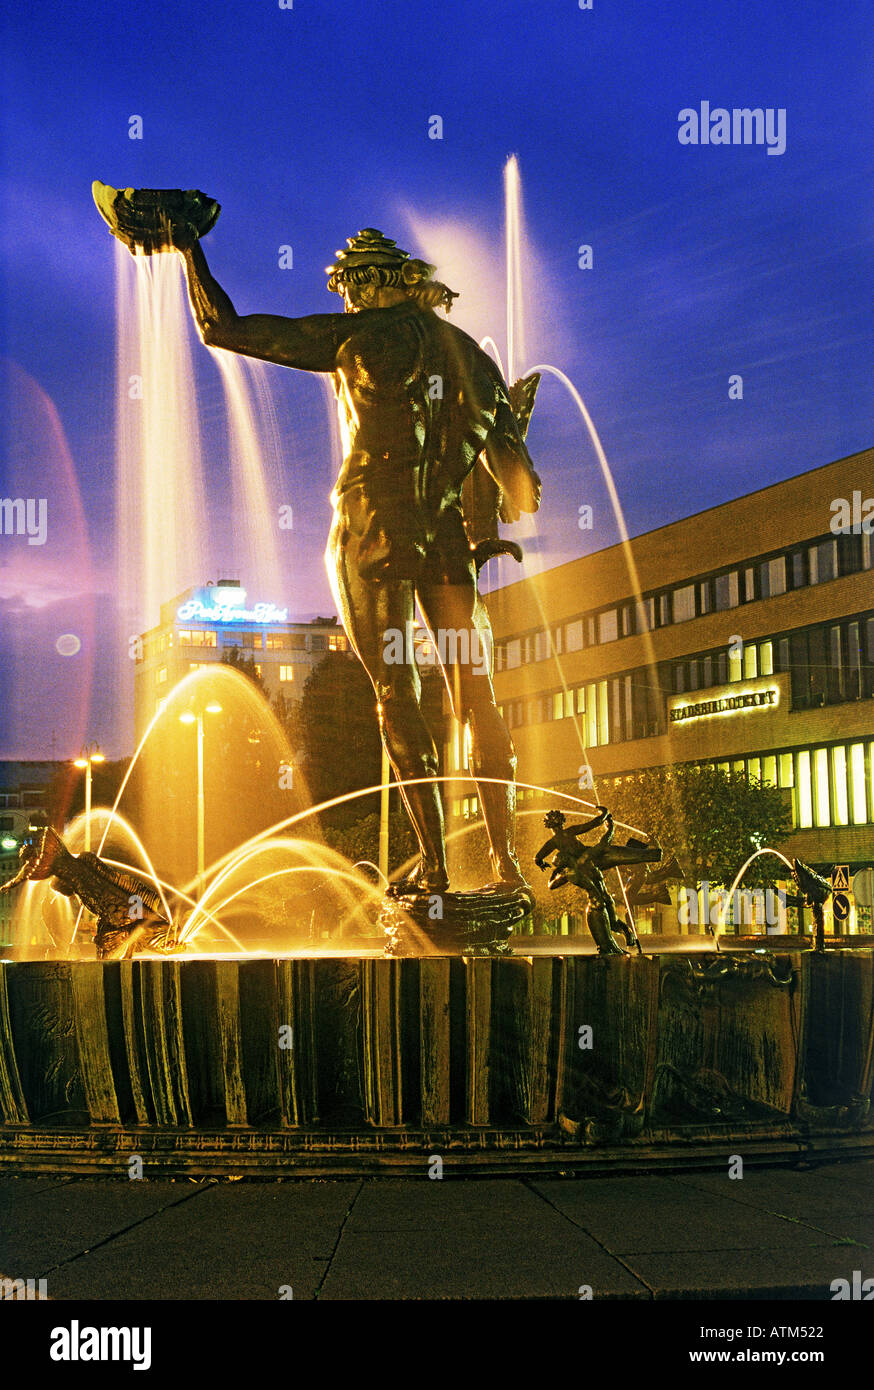 Statue of Poseidon by Carl Milles on Avenyen in Gothenburg Sweden - Stock Image